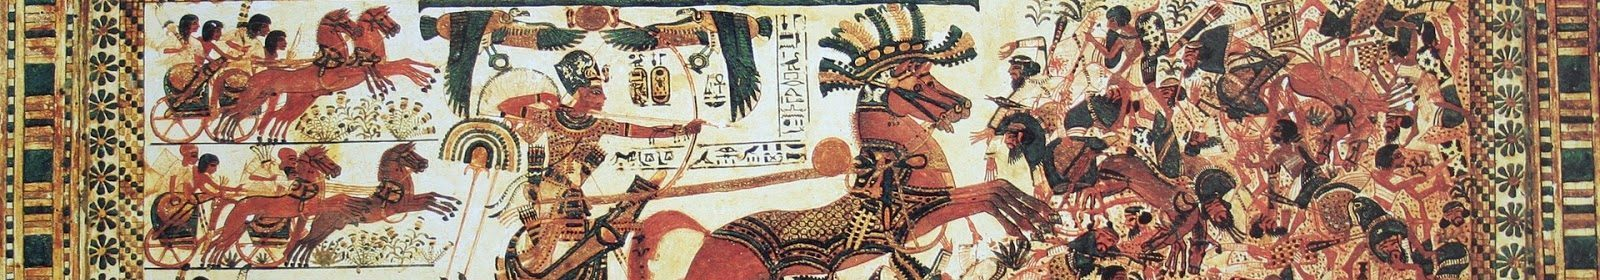 Ancient Egyptian Battles